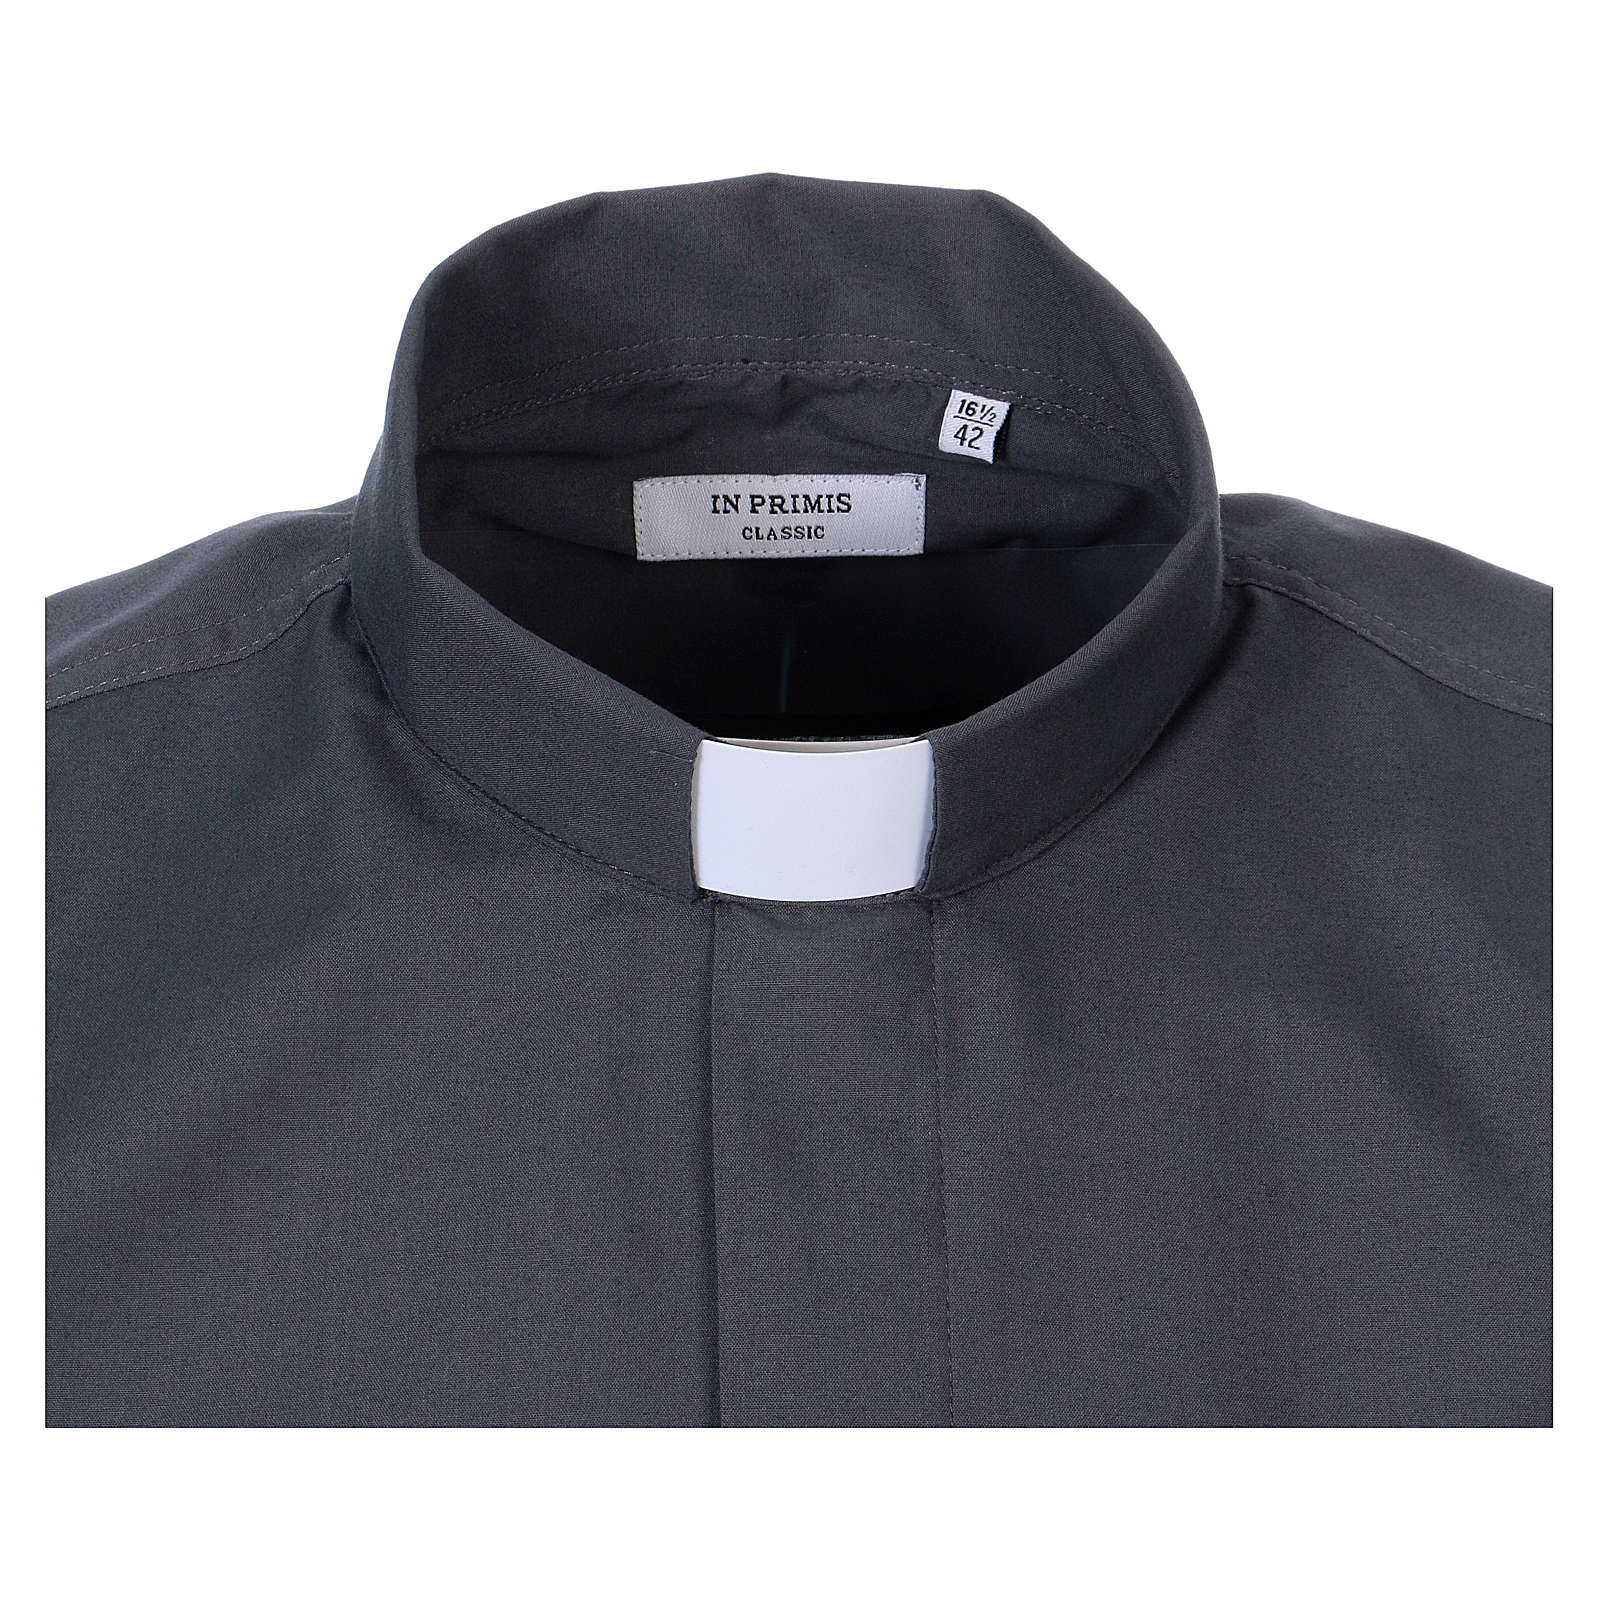 Long-sleeved clergy shirt in dark grey cotton blend In Primis 4